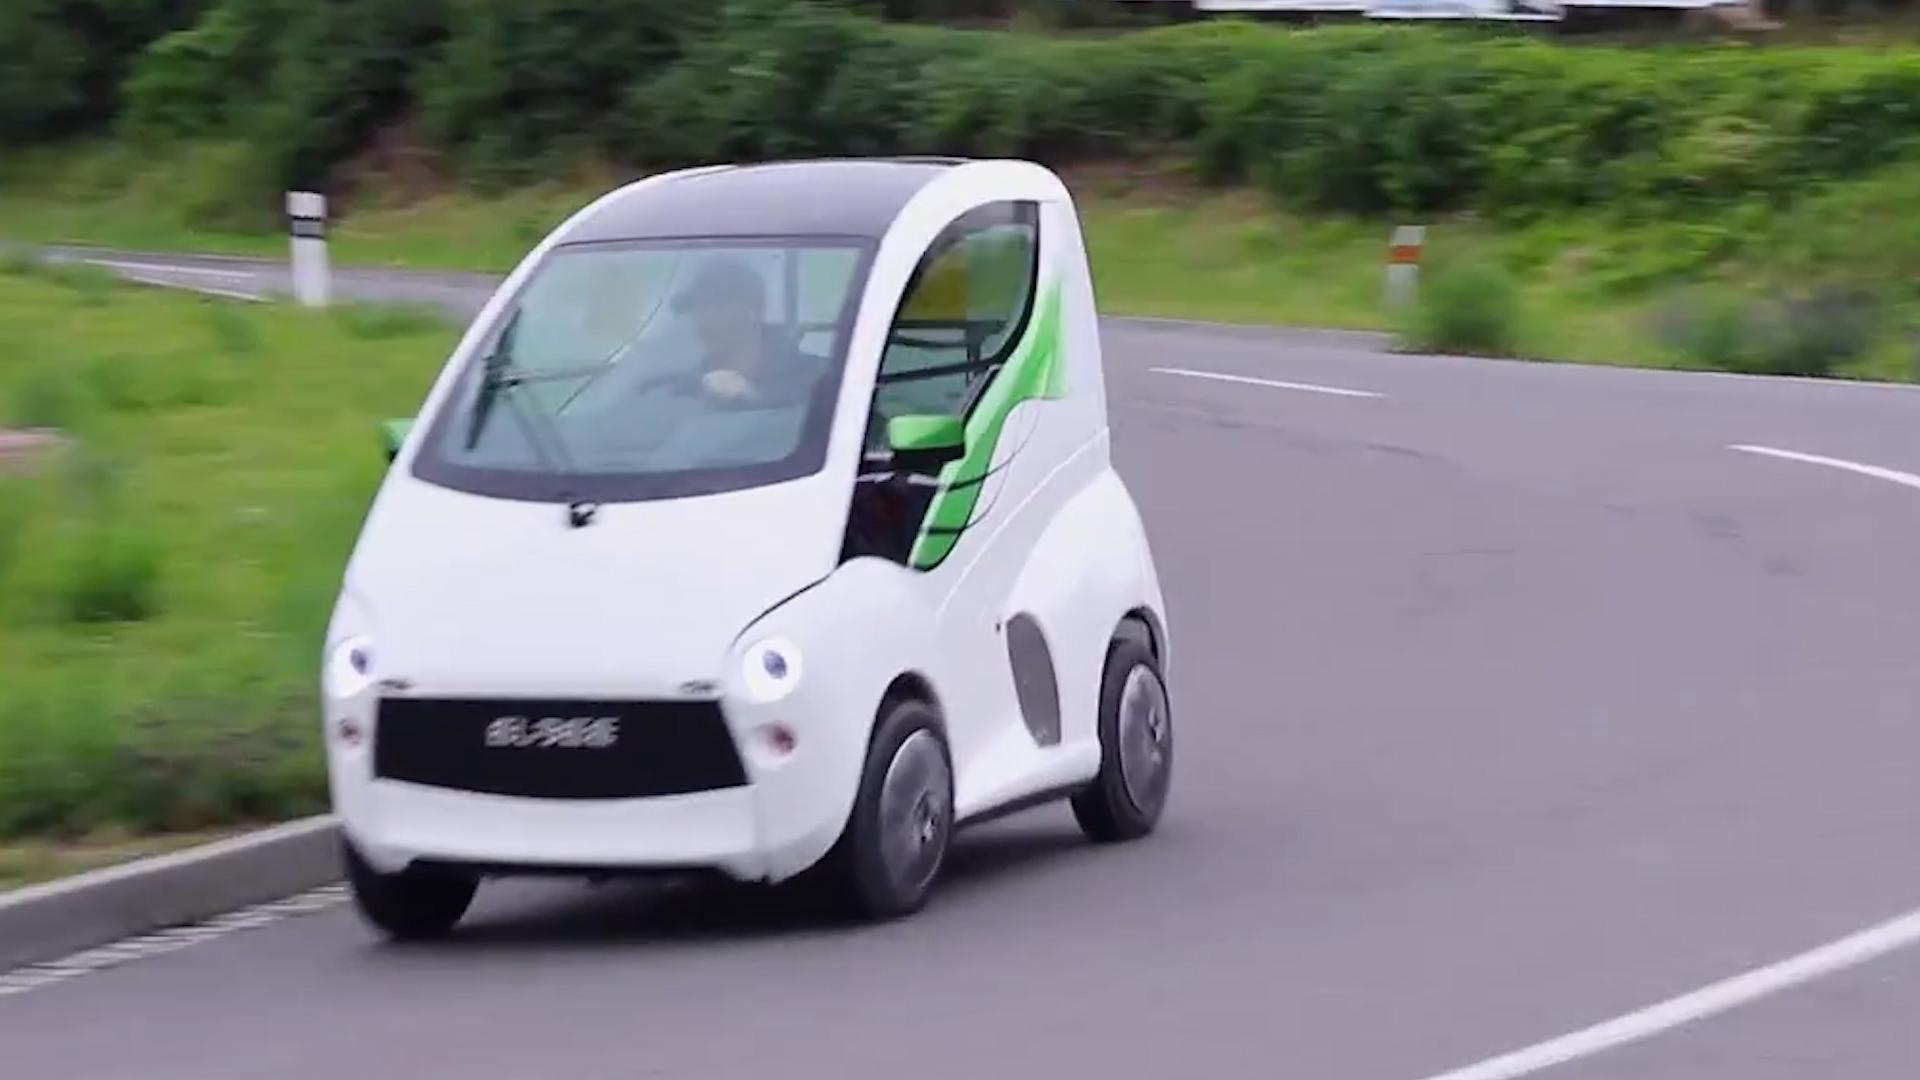 This tiny car is wheelchair compatible